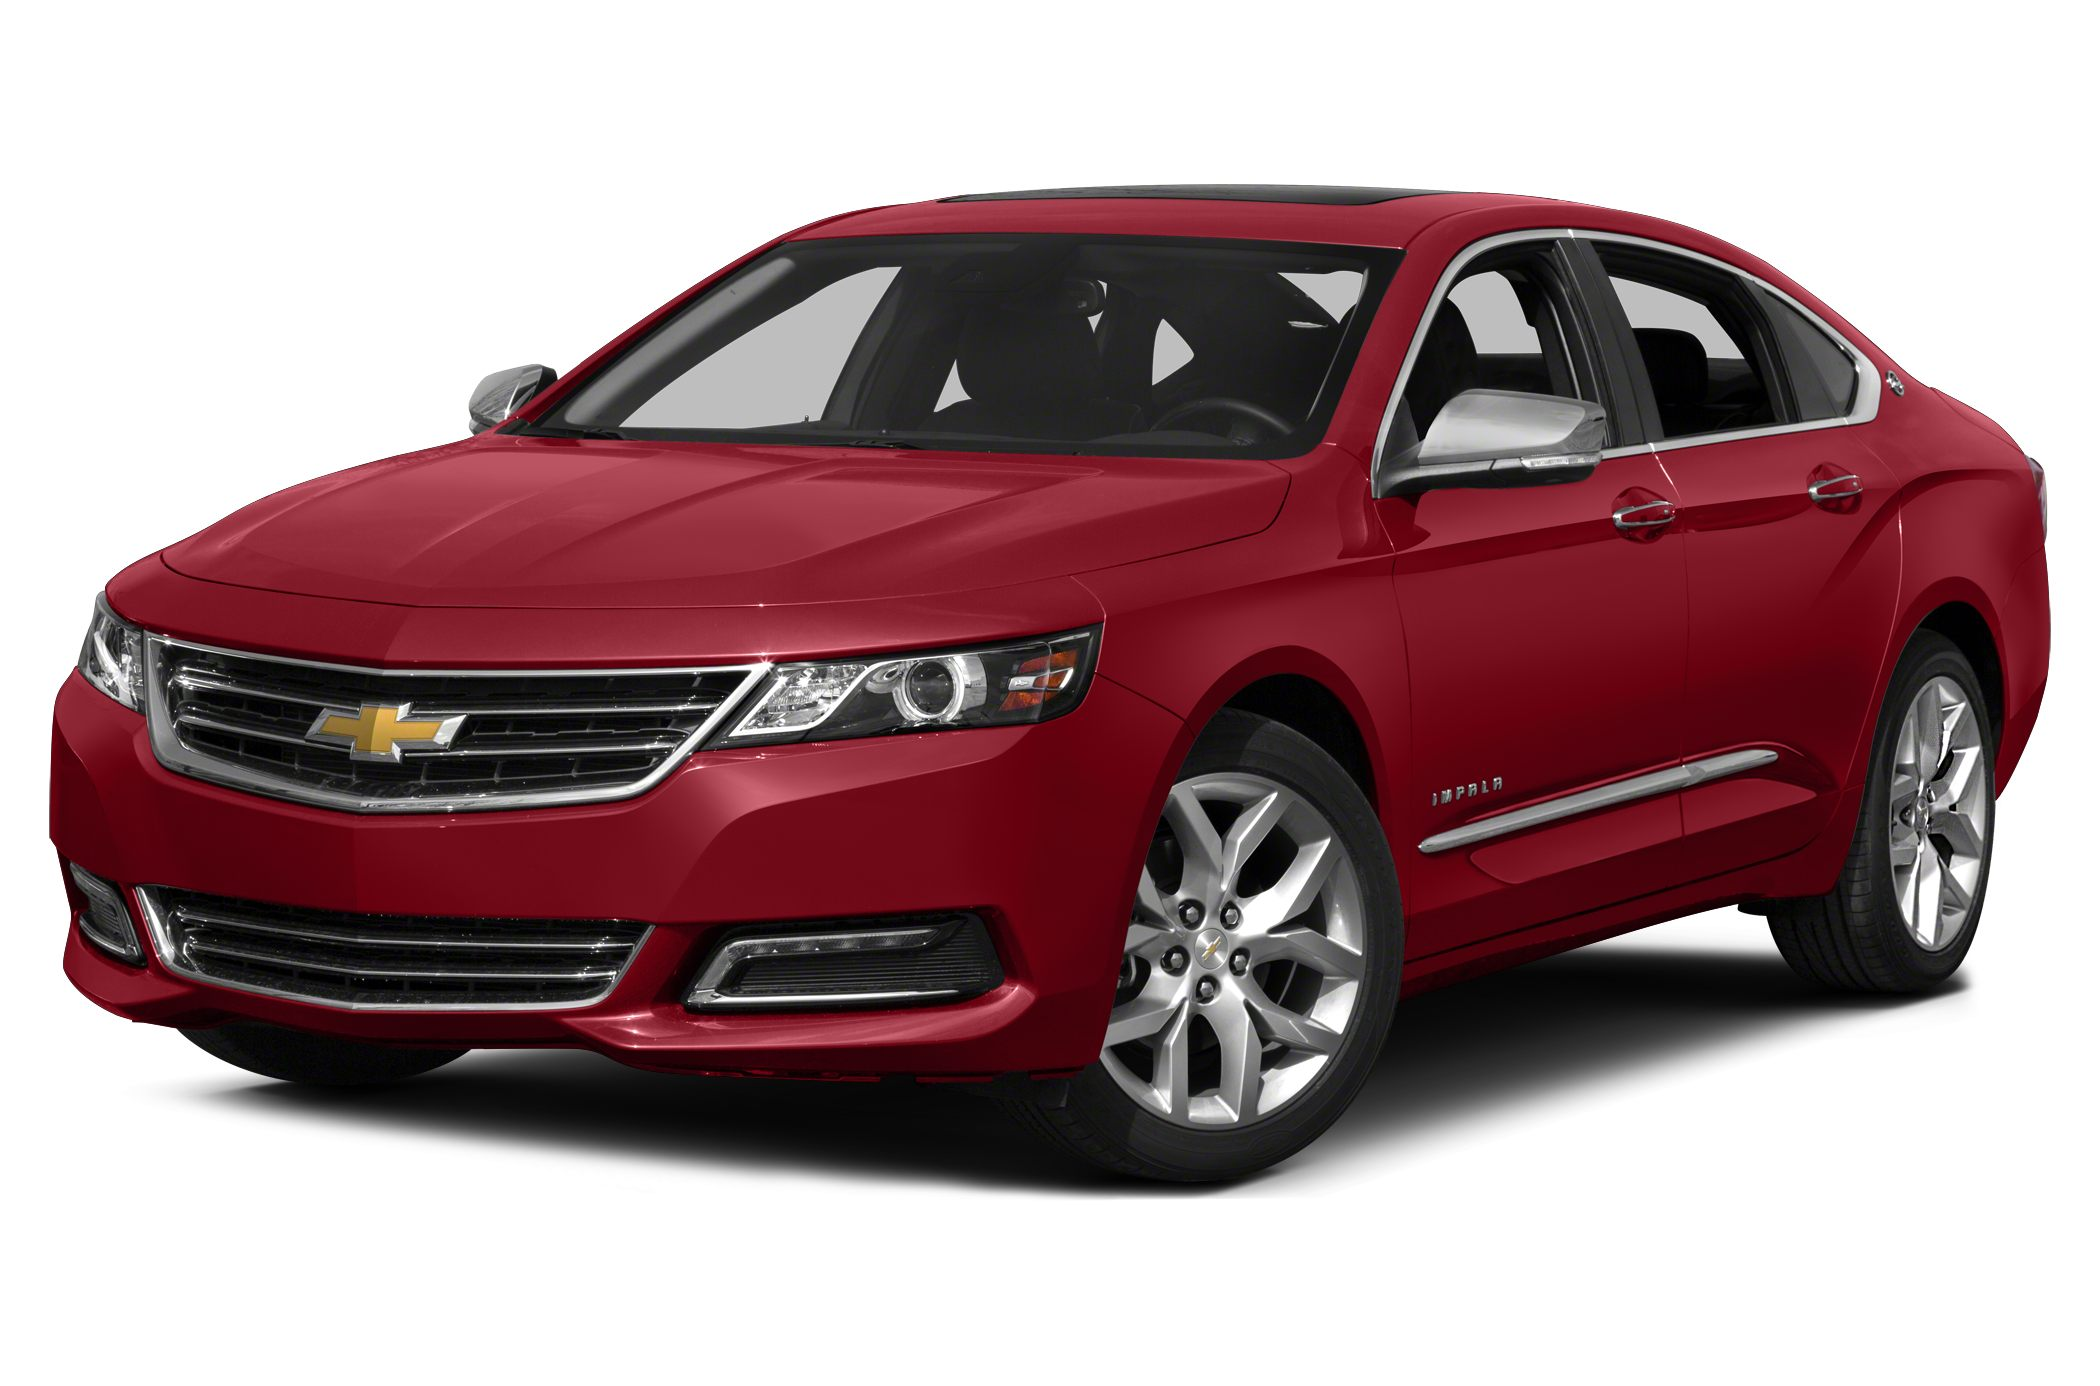 2015 Chevrolet Impala 2LT Sedan for sale in Andover for $33,150 with 0 miles